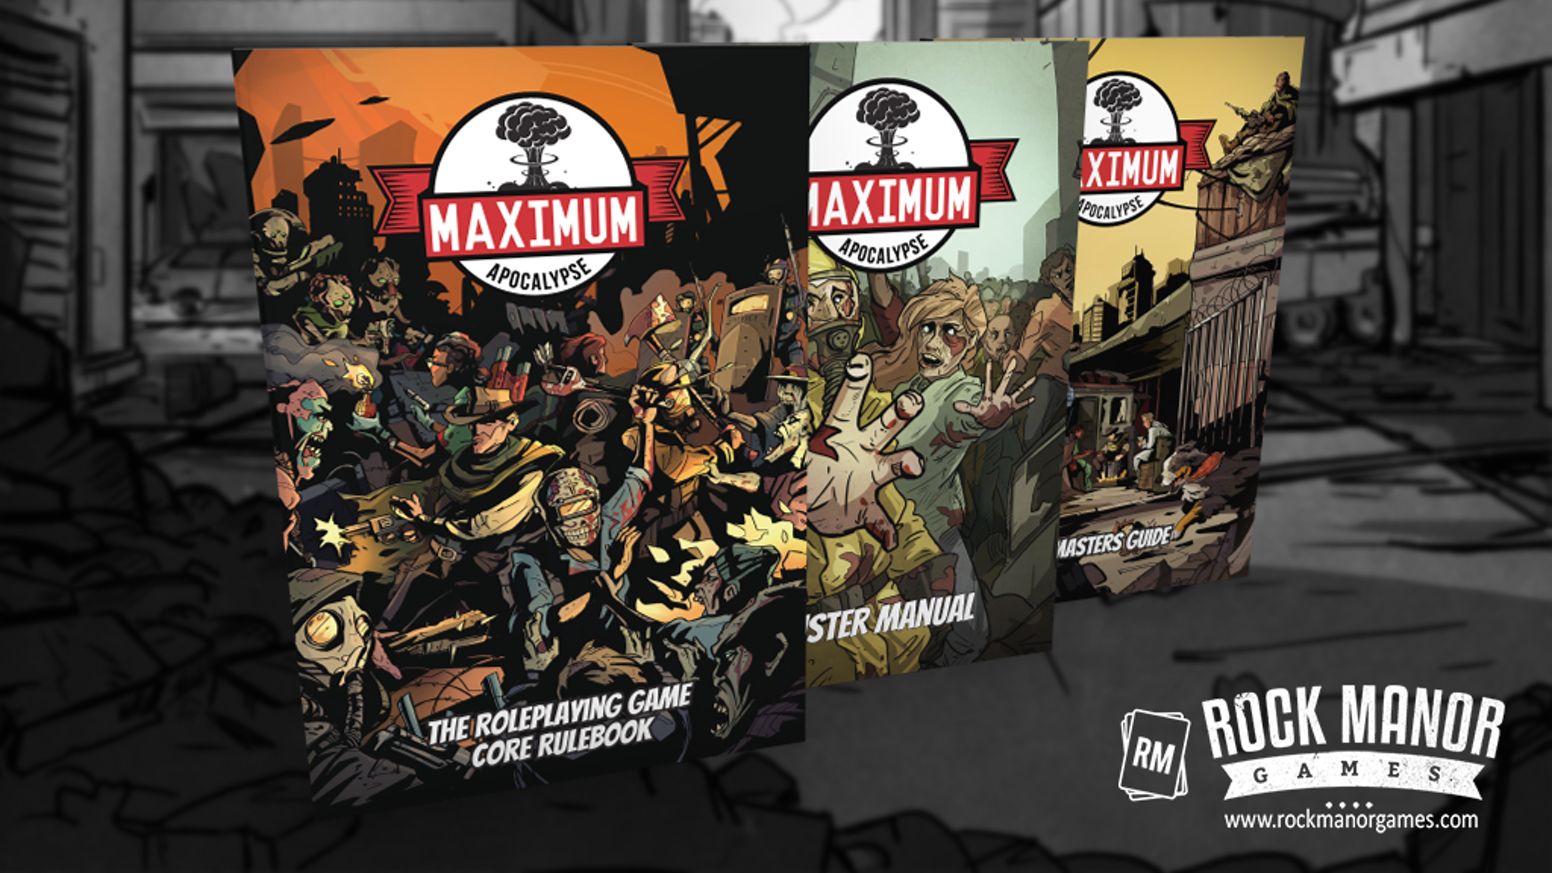 An immersive Tabletop Role Playing experience based on the post-apocalyptic board game series, Maximum Apocalypse